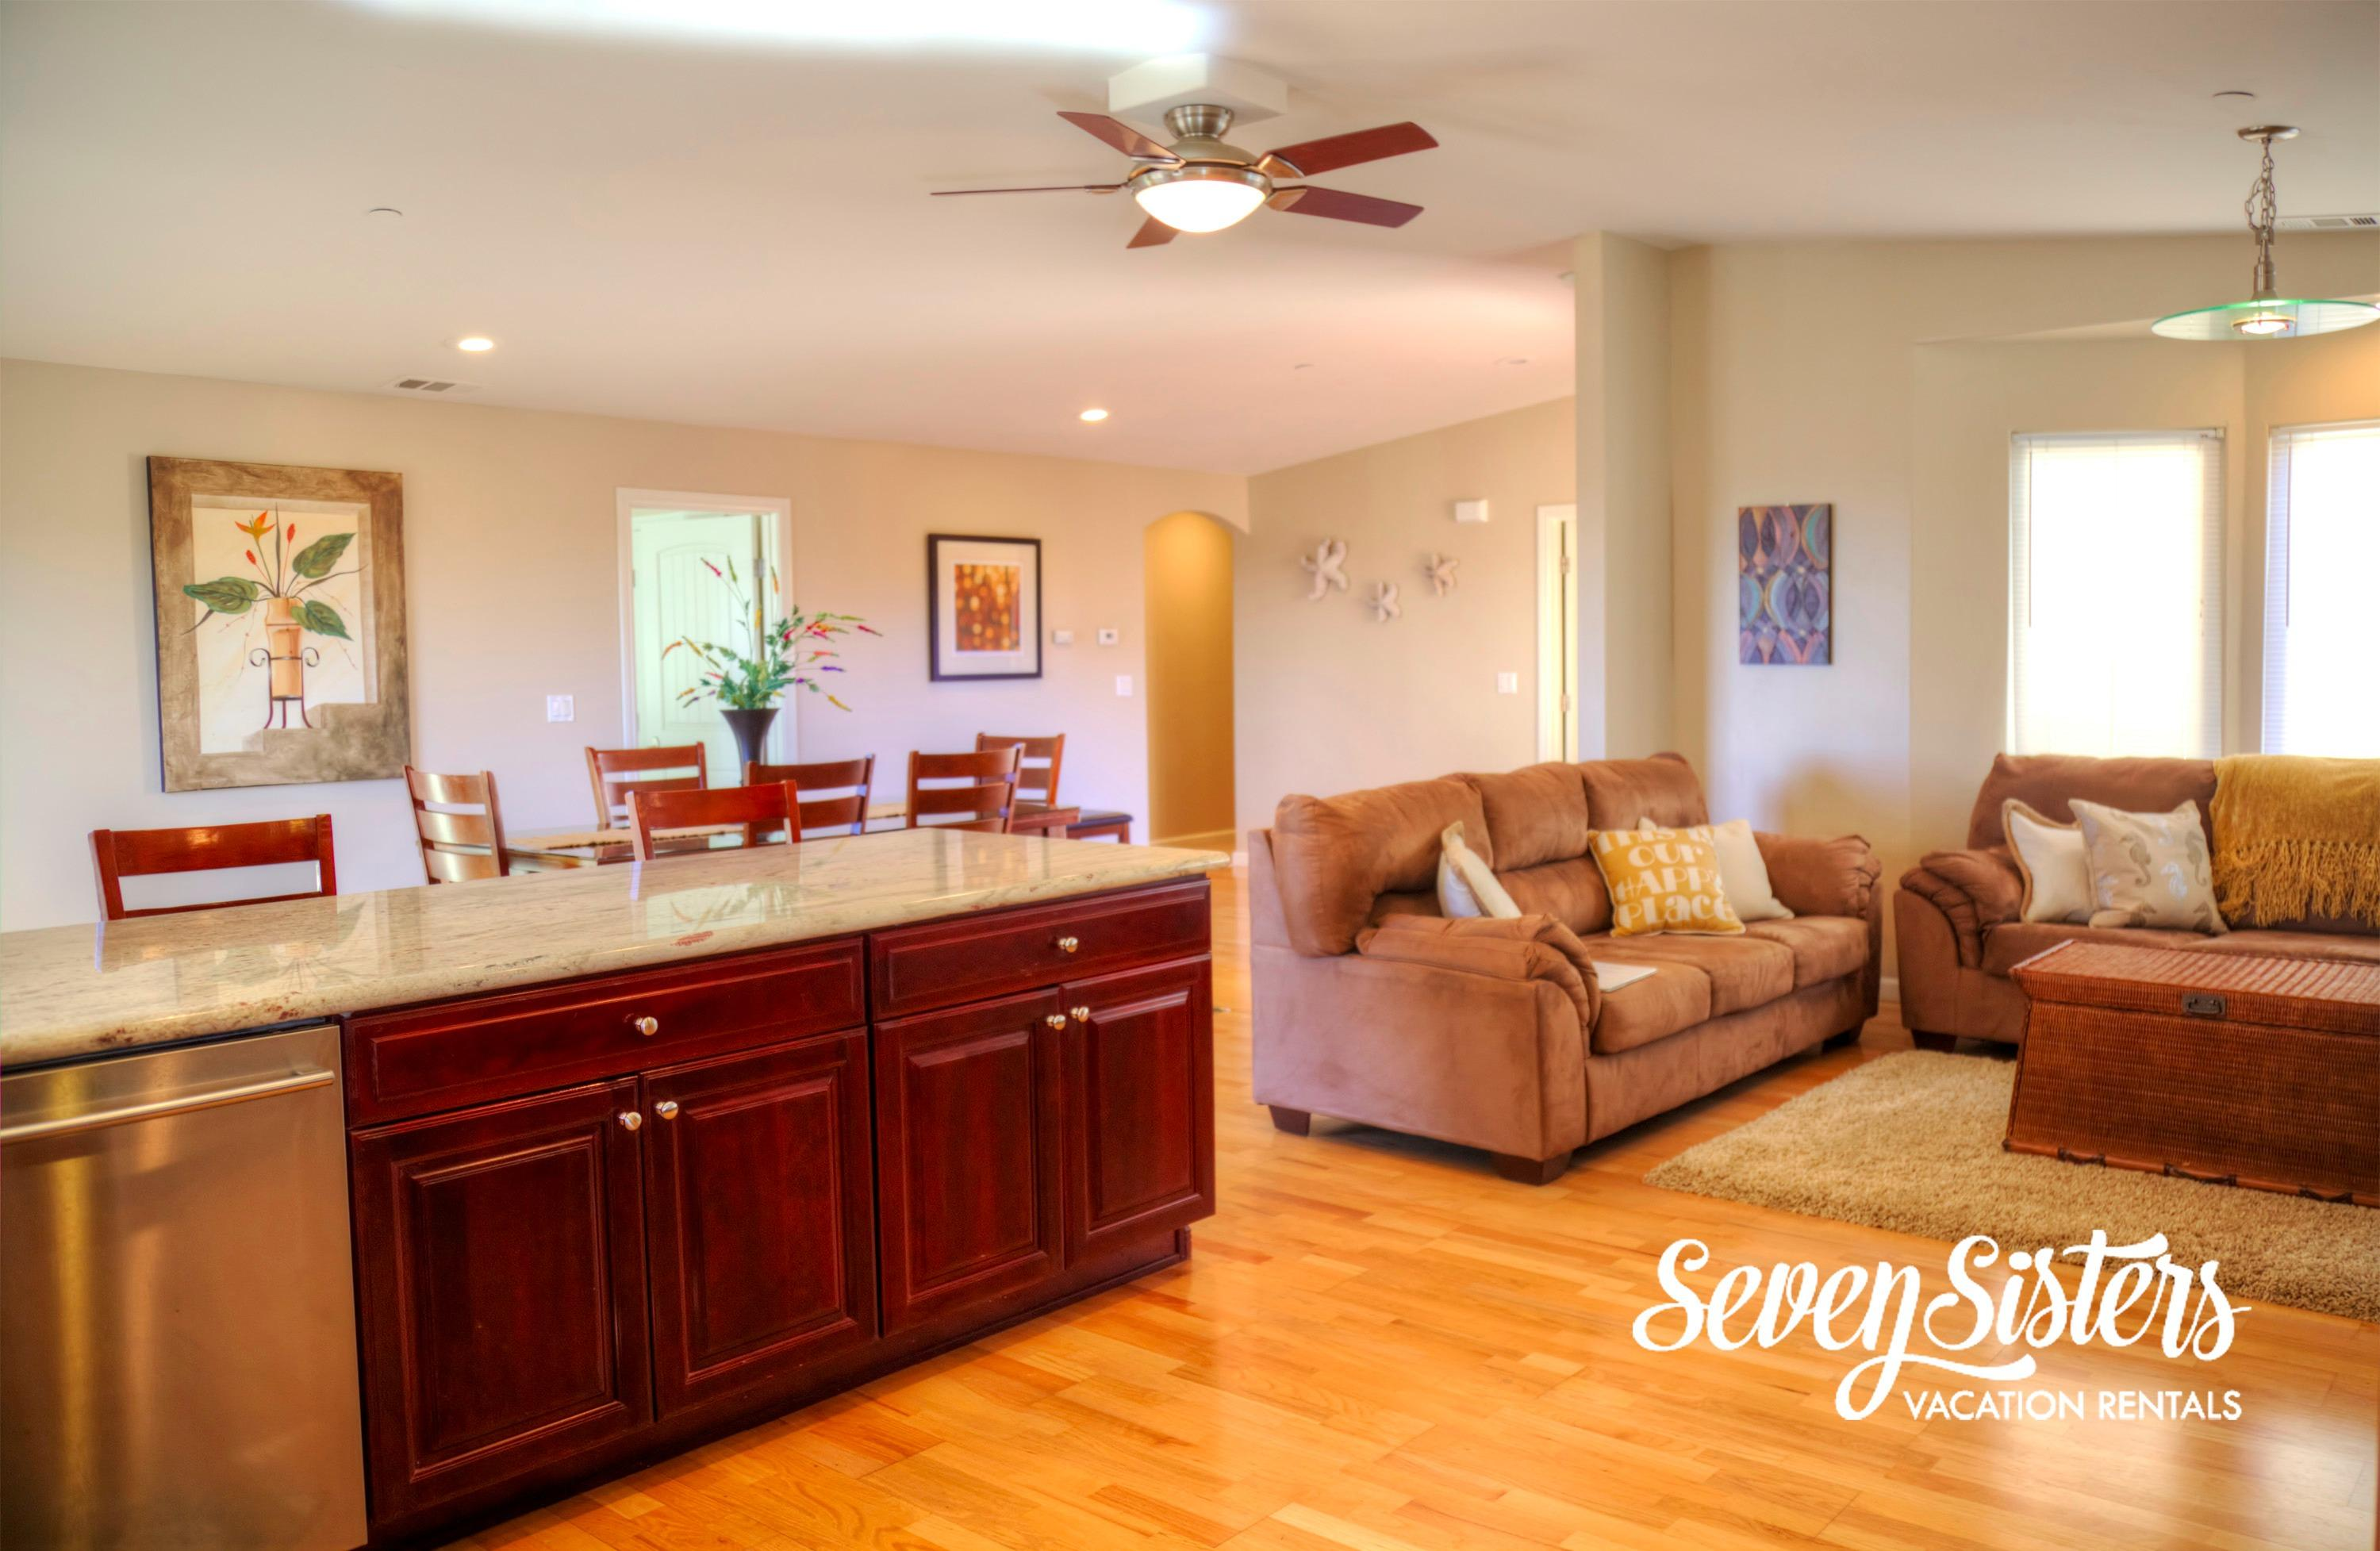 Seven Sisters Vacation Rentals image 17